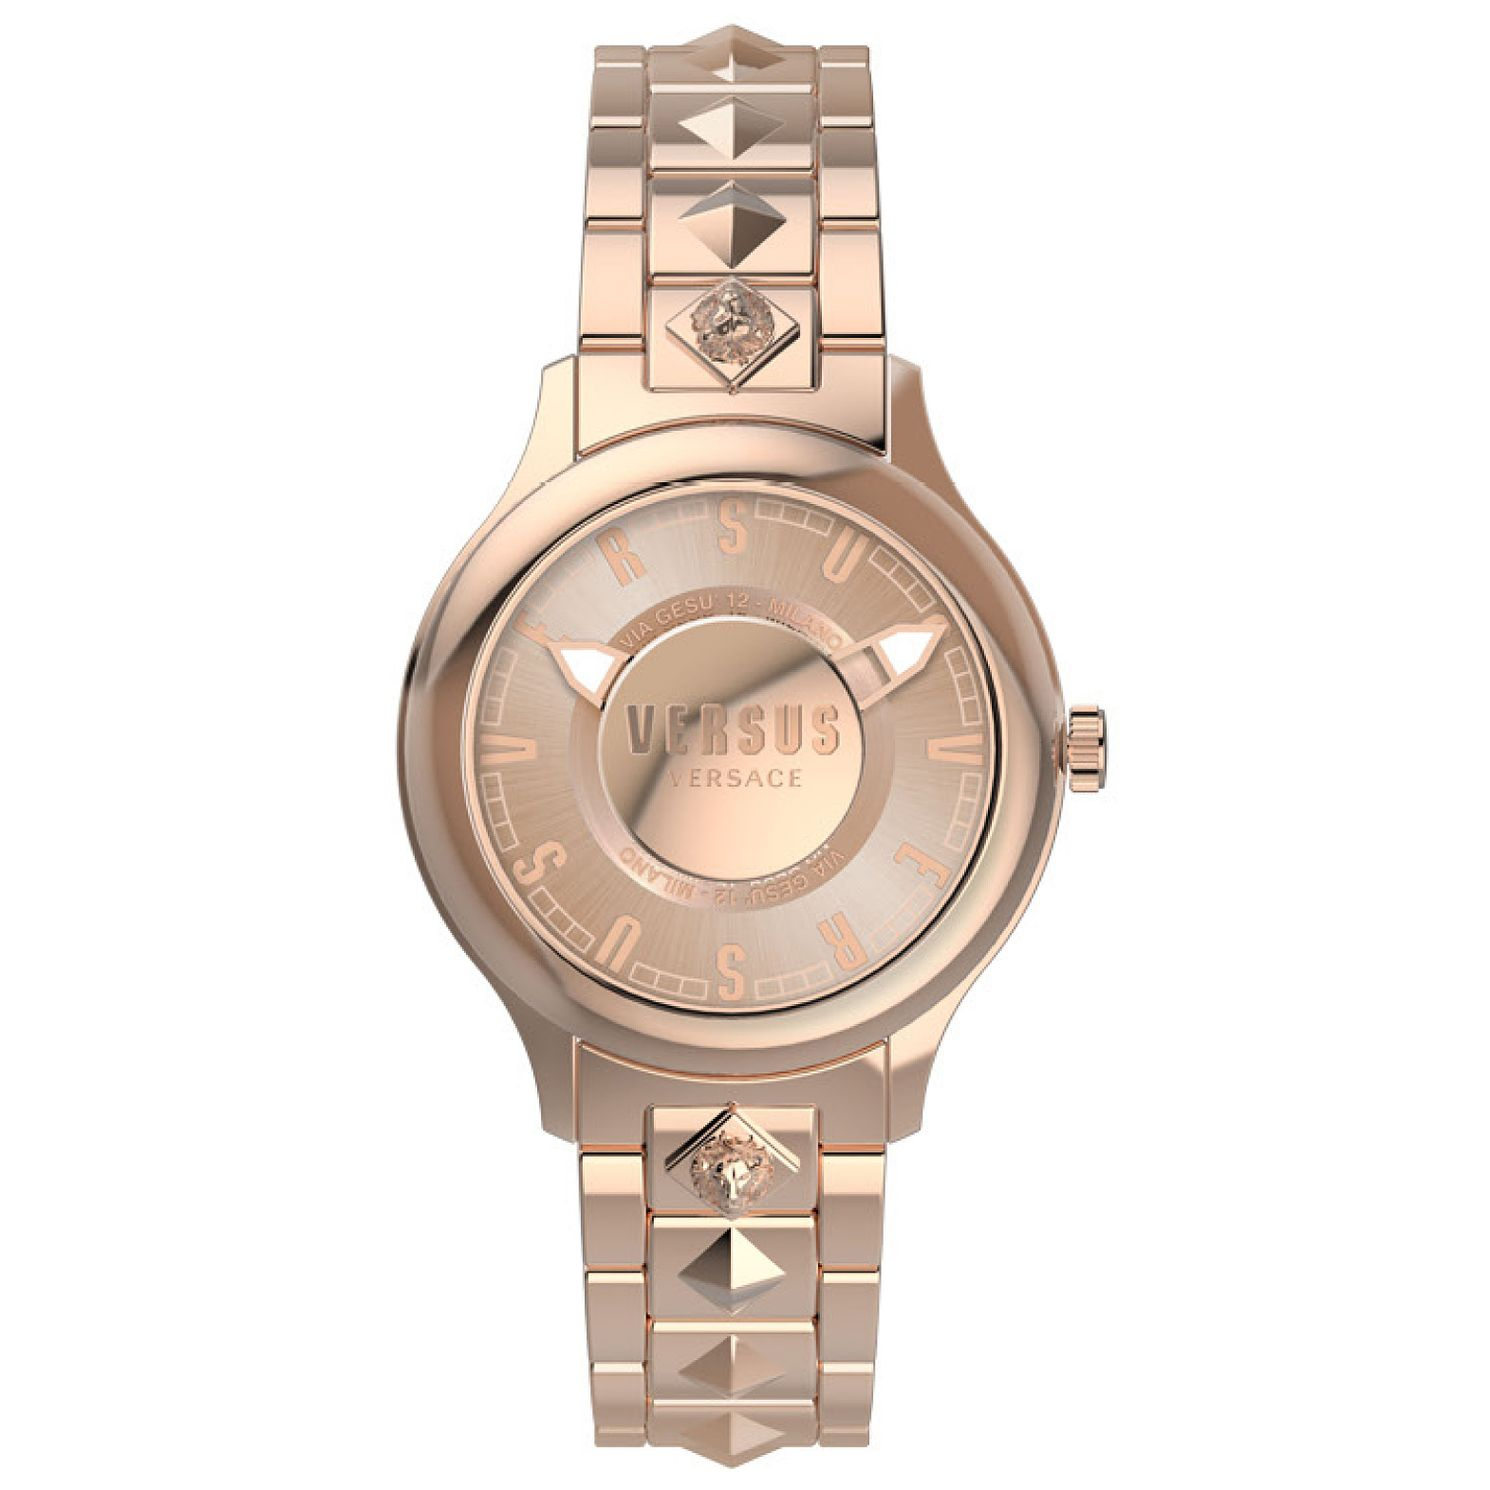 Versus Versace Tokai Ladies' Rose Gold Tone Bracelet Watch - Product number 8049521